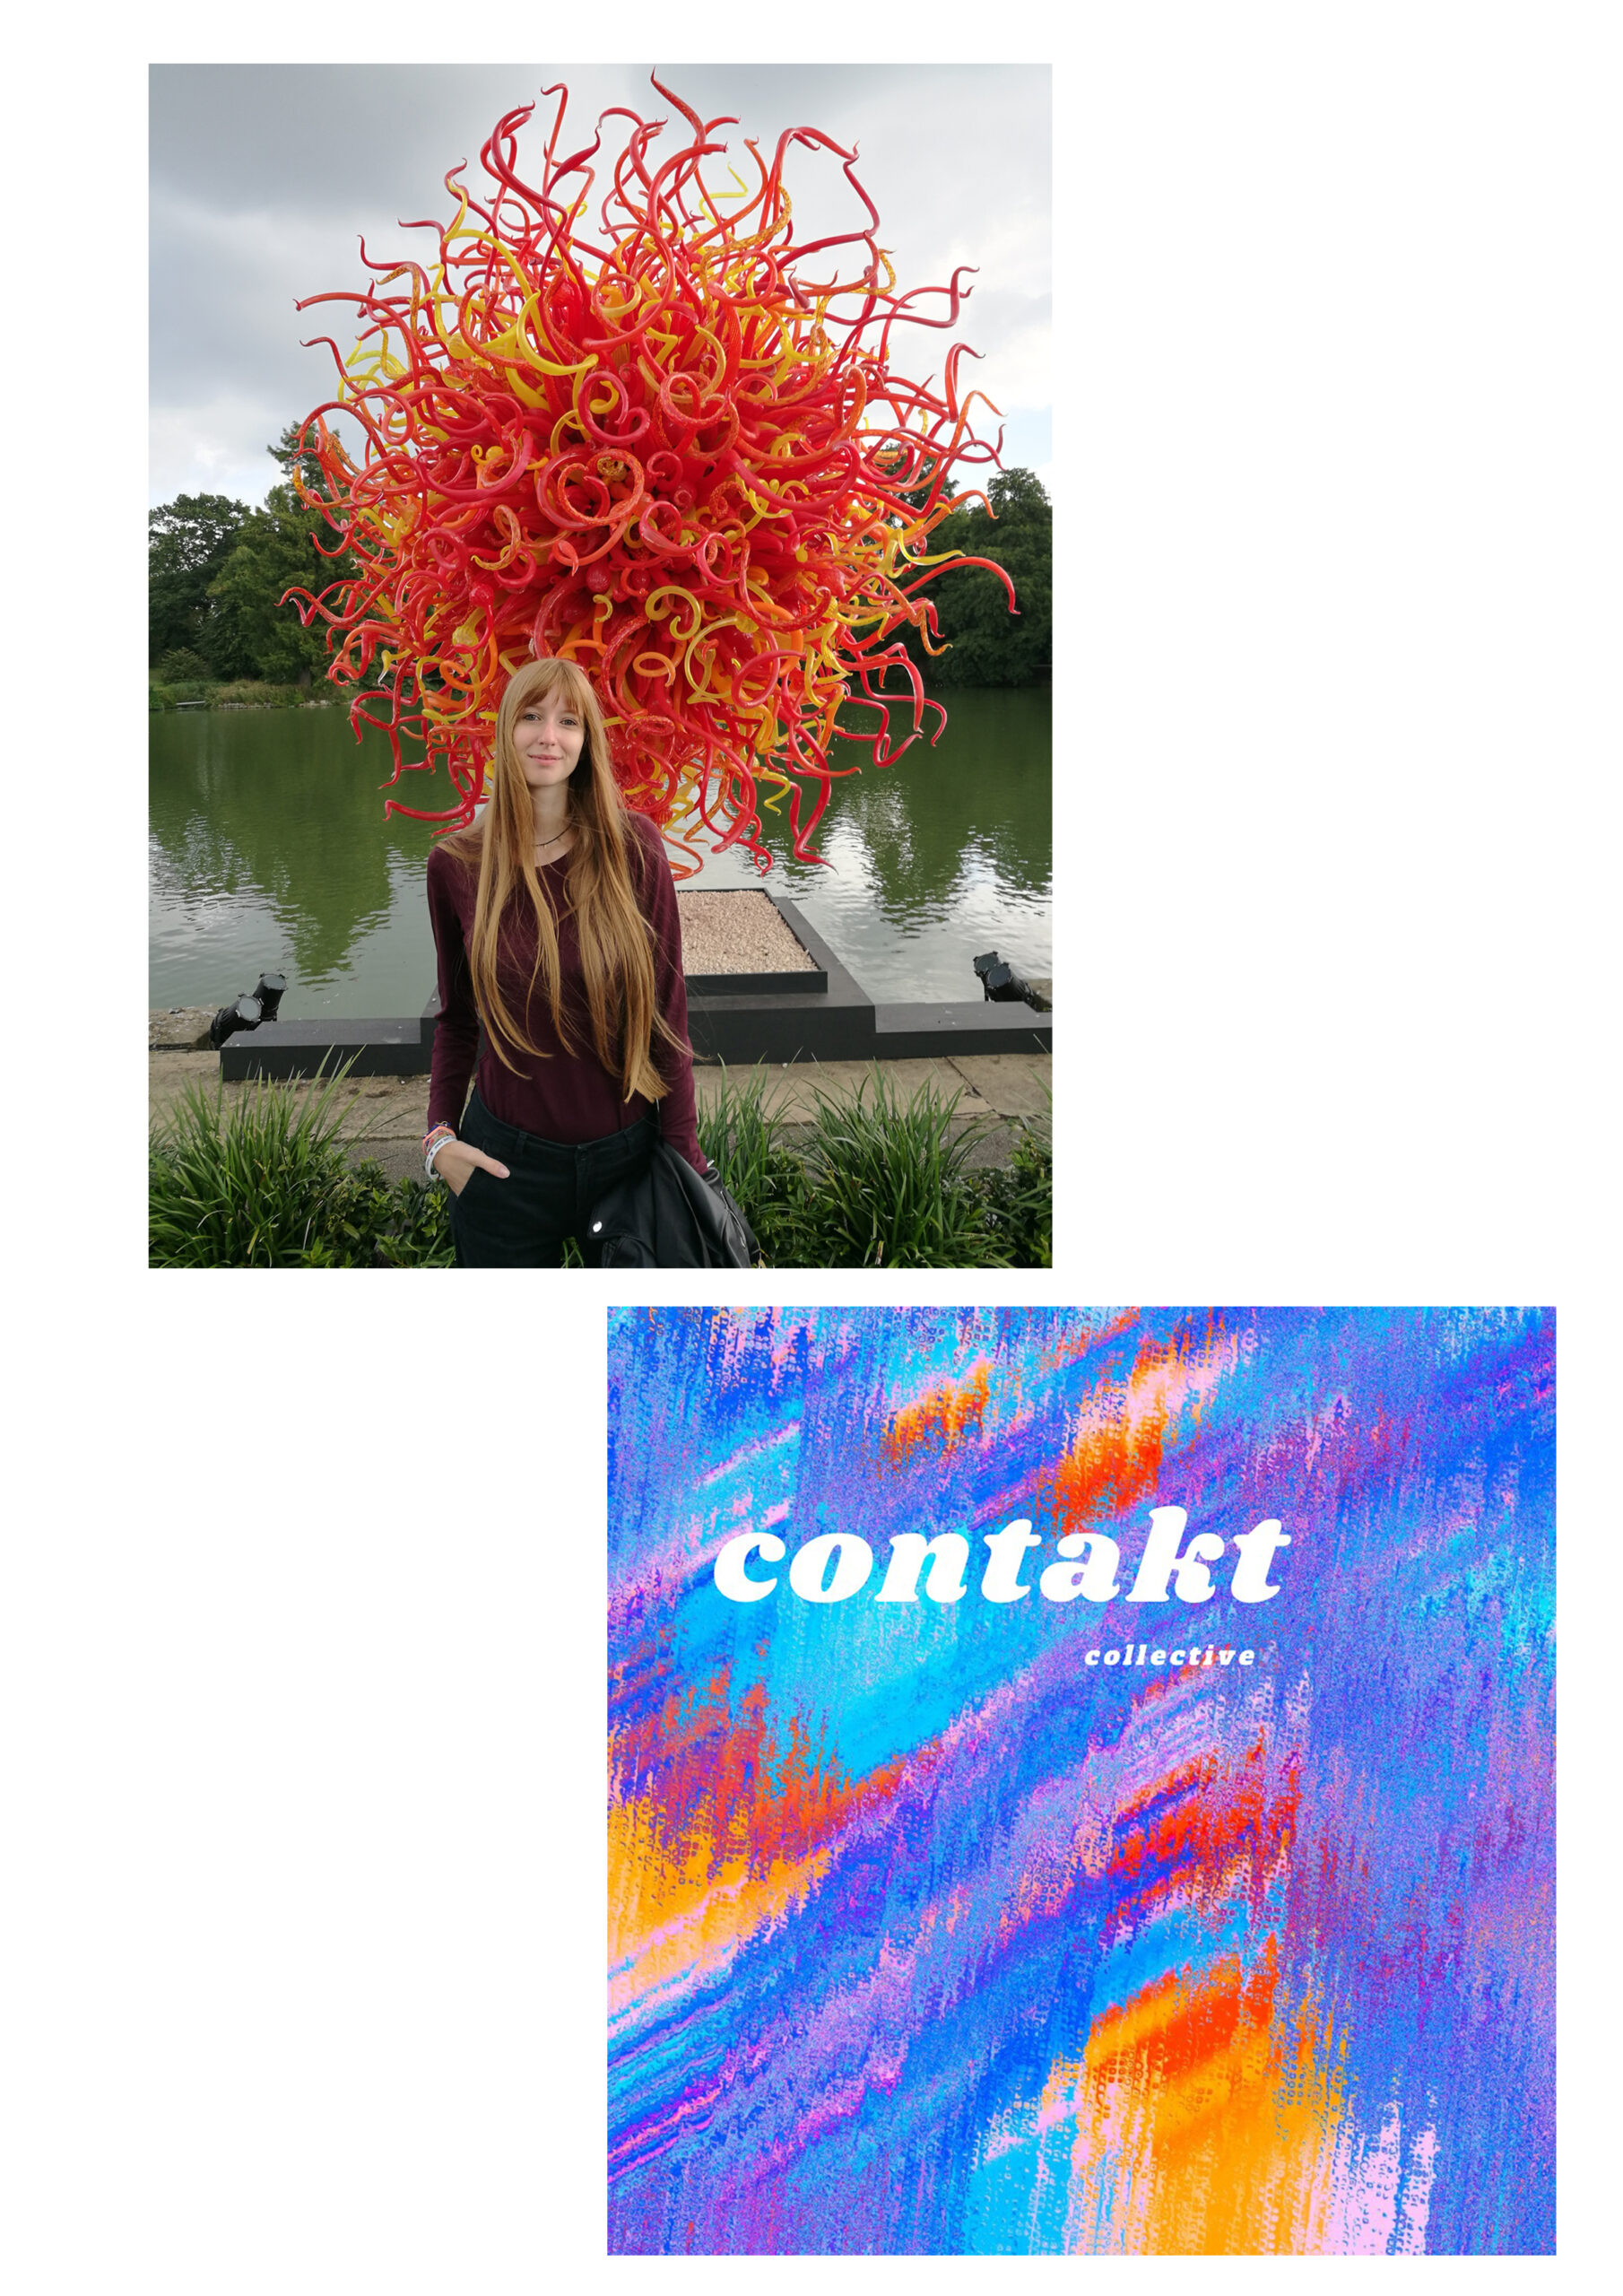 Cristina Ricci in front of Chihuly's sculpture and Contakt Collective logo